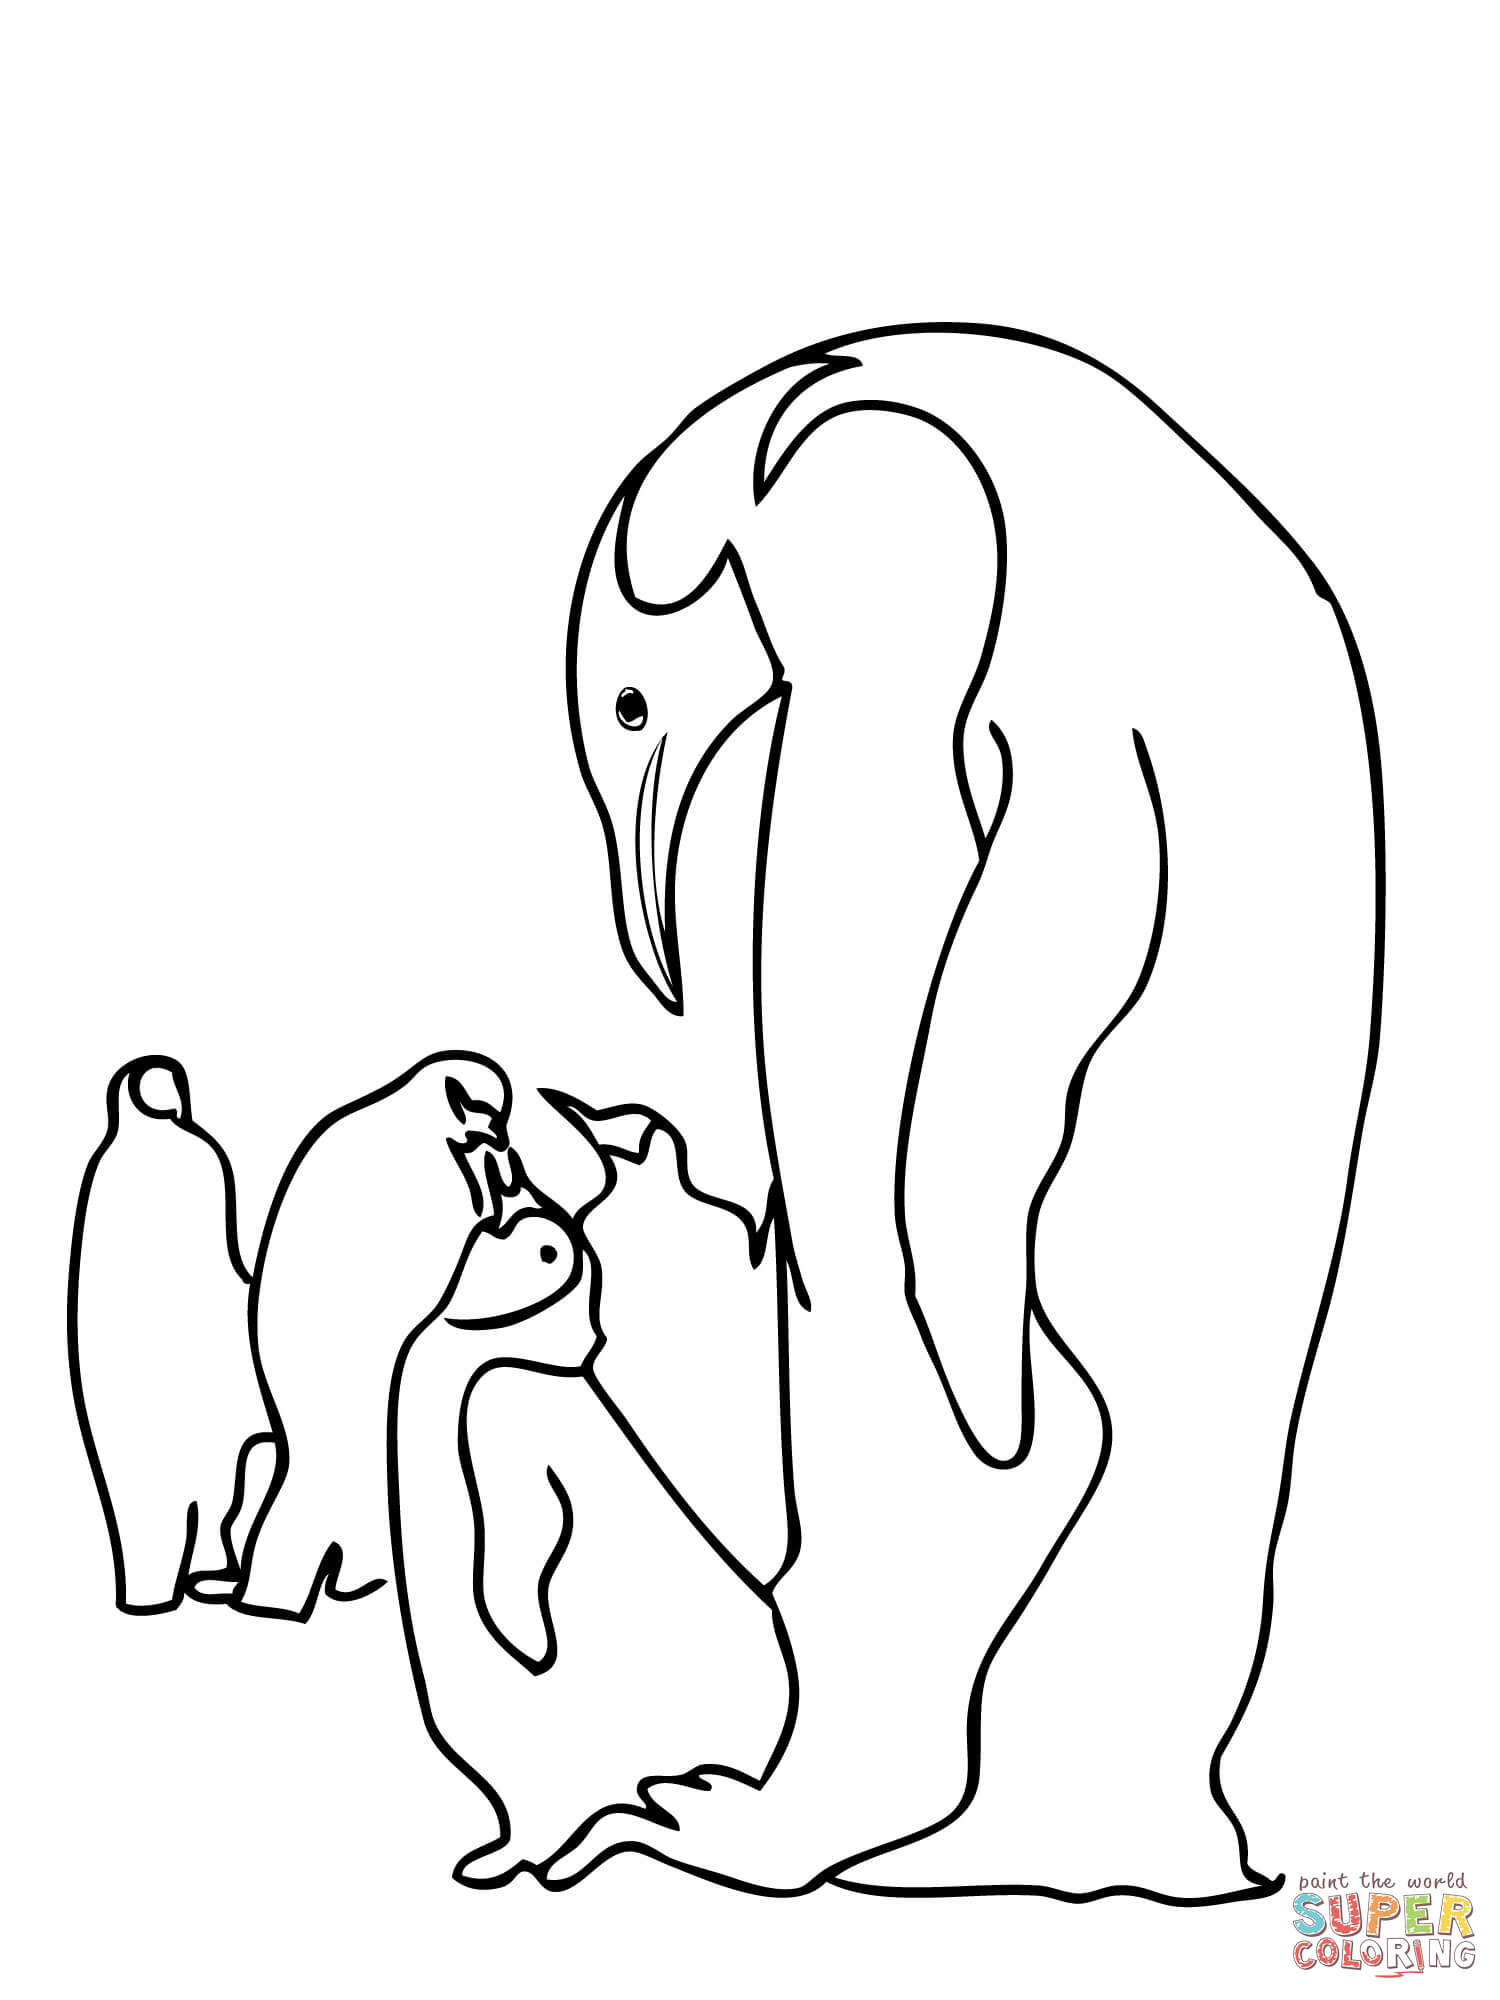 1500x2000 Emperor Penguins Family Coloring Page Free Printable Coloring Pages